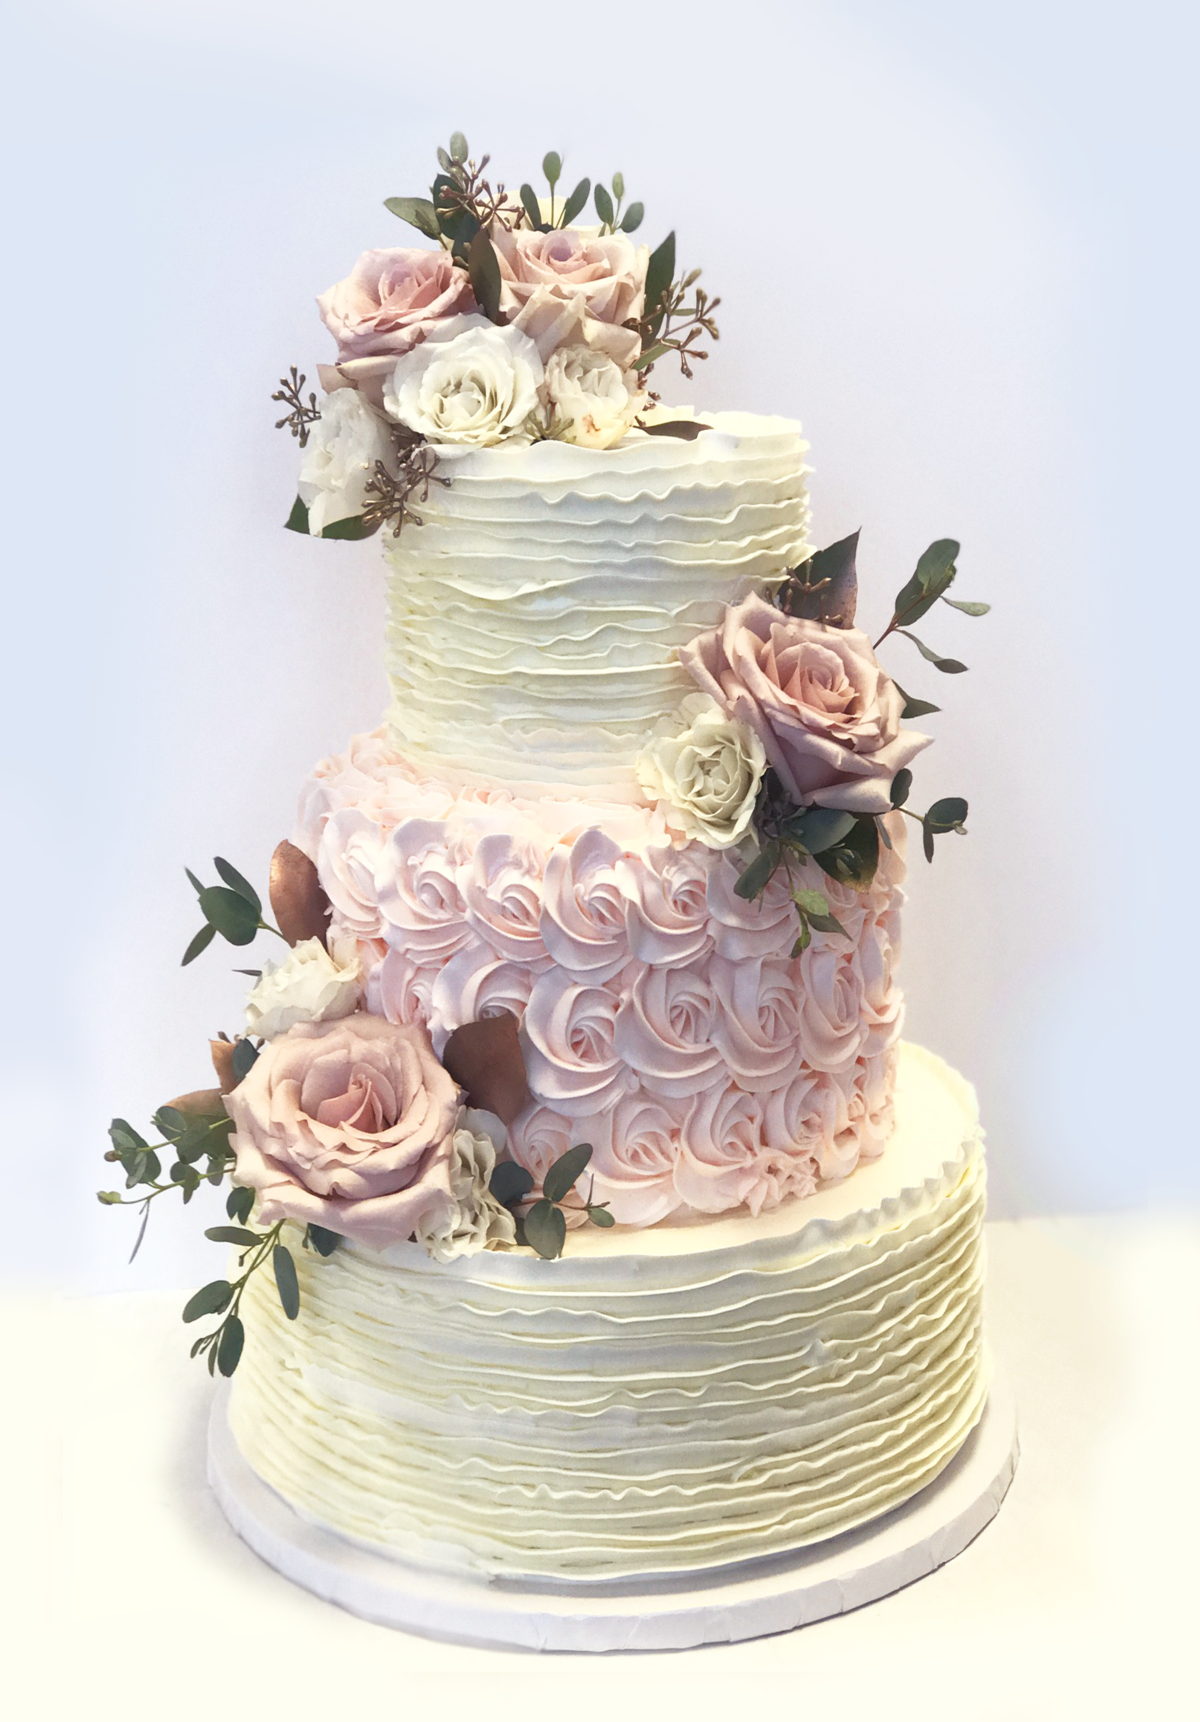 Whippt Wedding Cake - buttercream ruffles and rosettes 2017